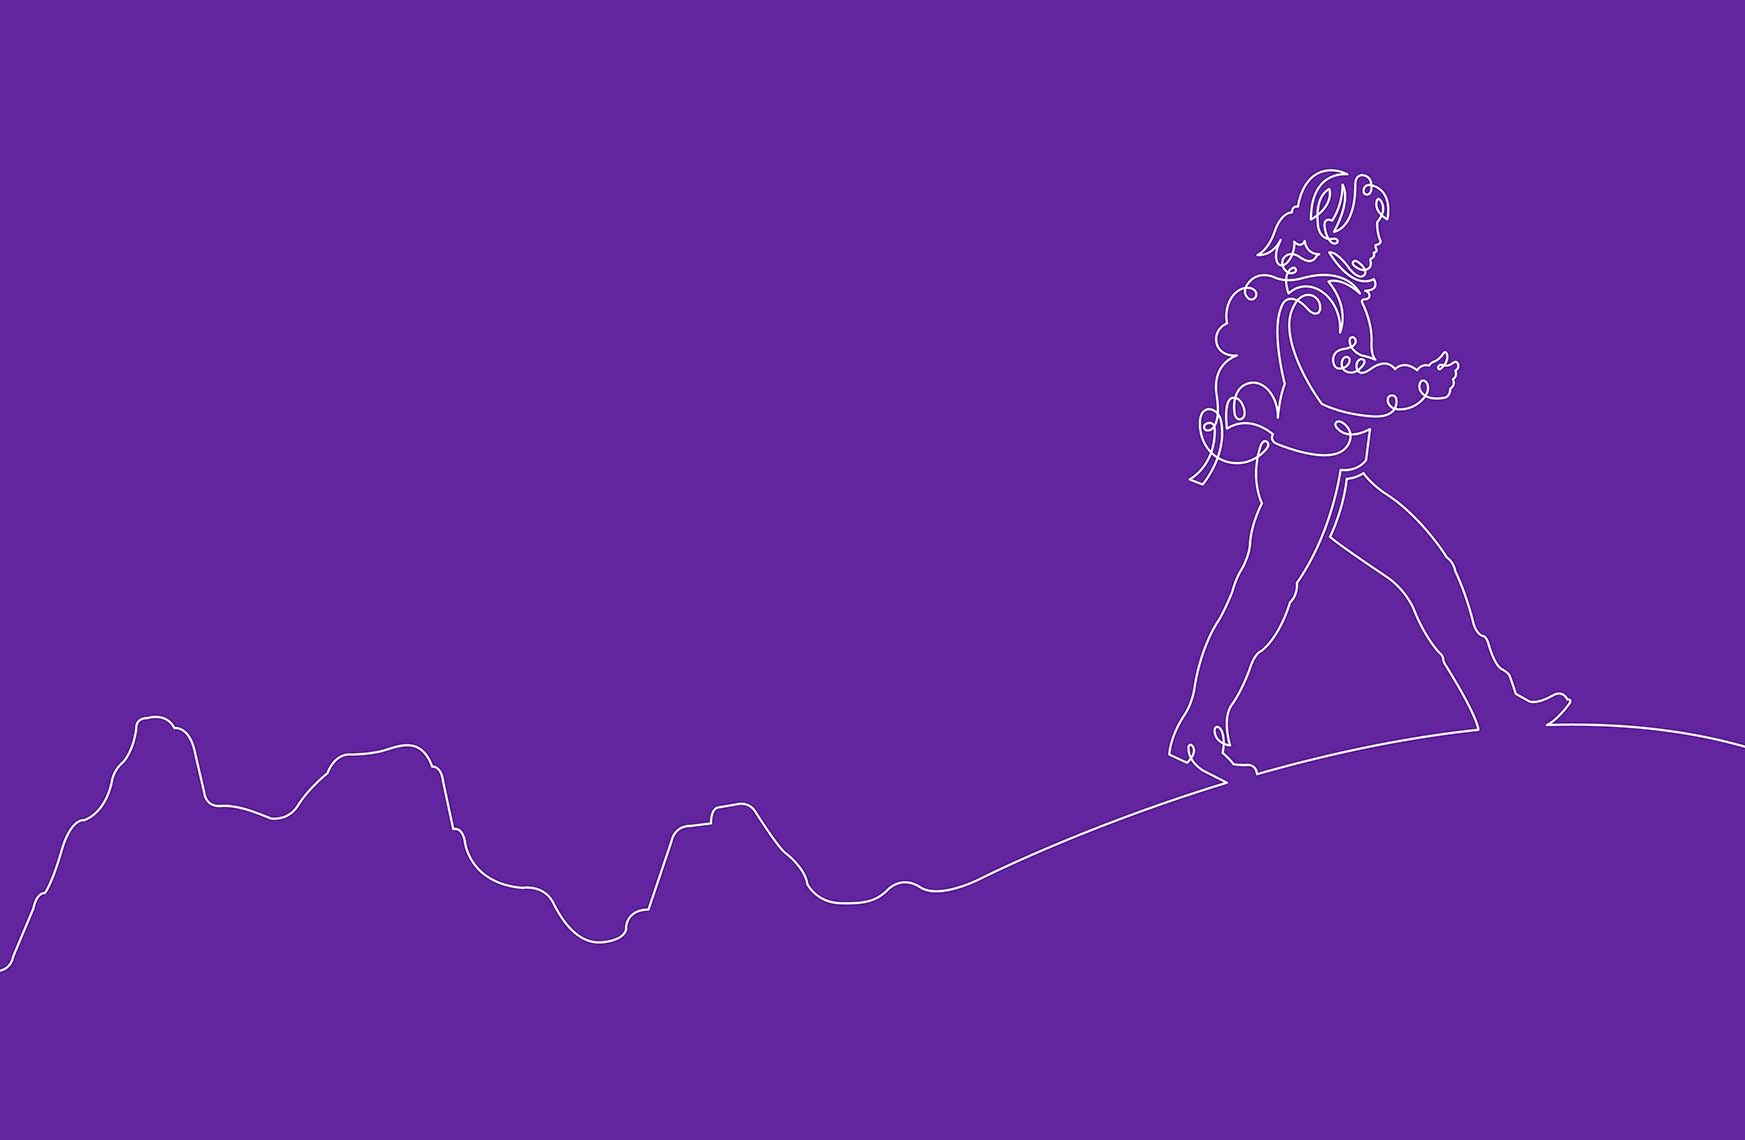 Continous-drawing-line-female-hiker-walking-in-mountains-Whittington